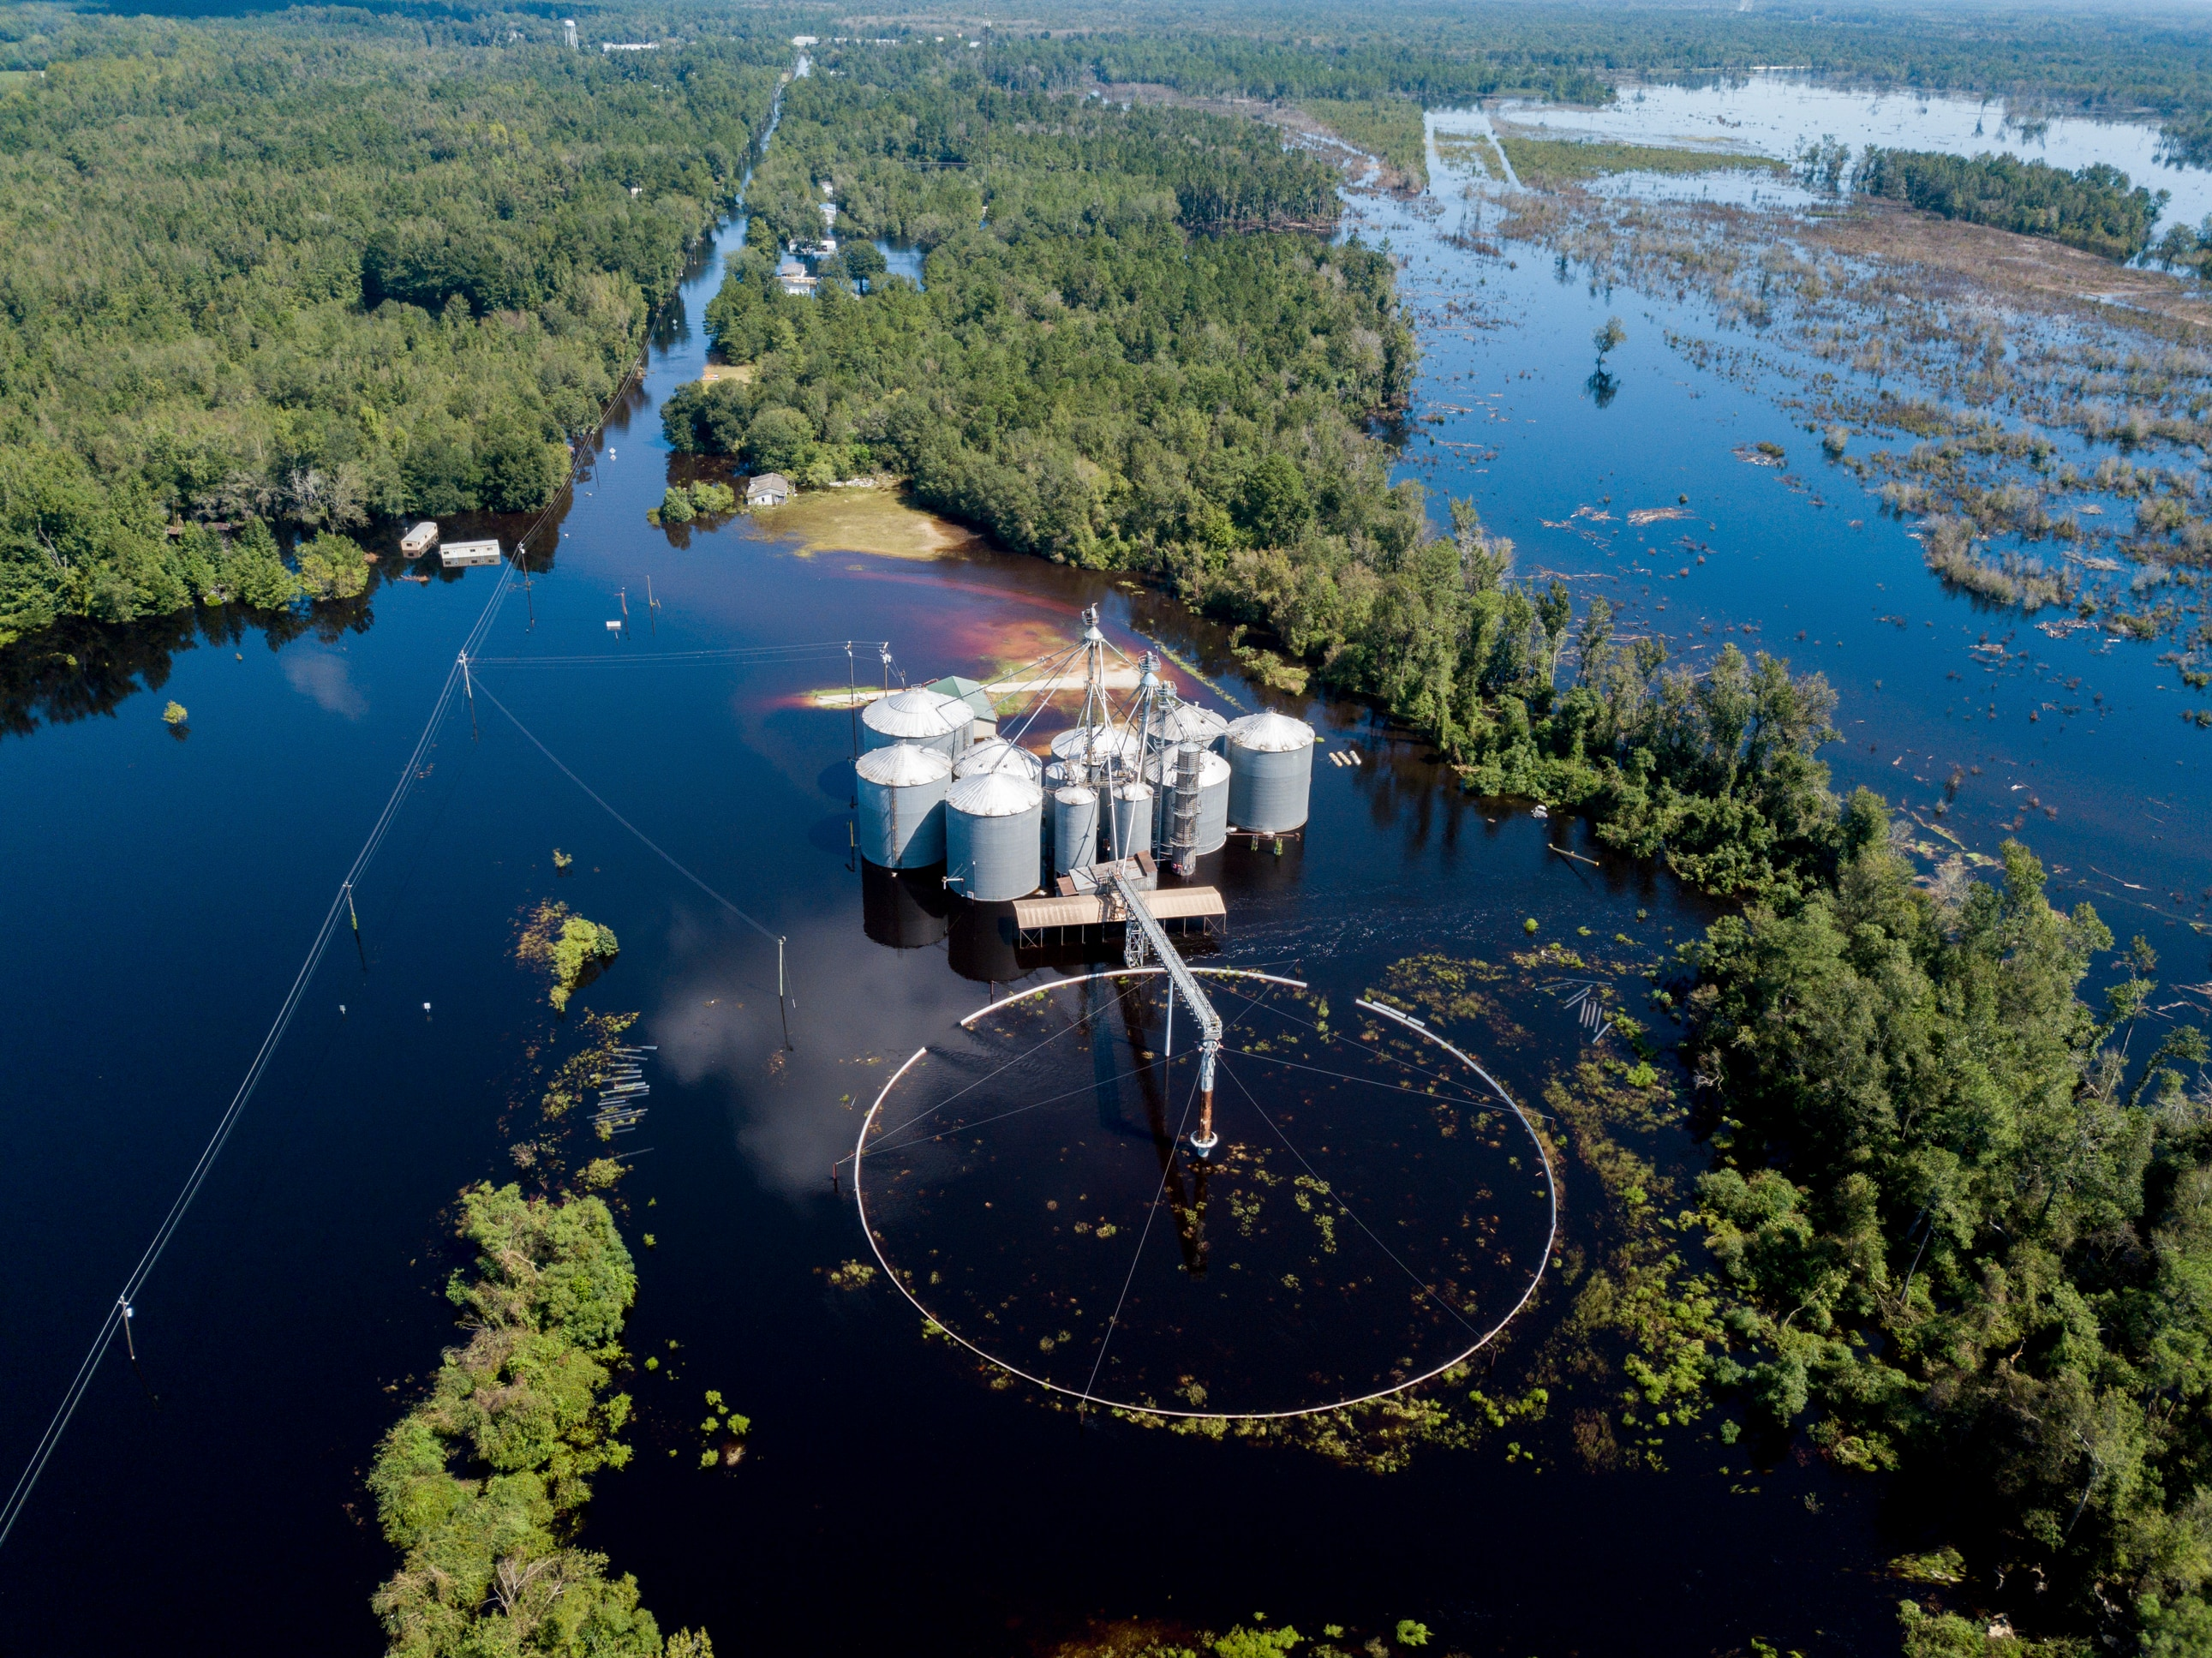 A flooded grain business along Highway 76, which follows the power lines at left, where law enforcement were searching for a submerged van near Nichols, S.C.,